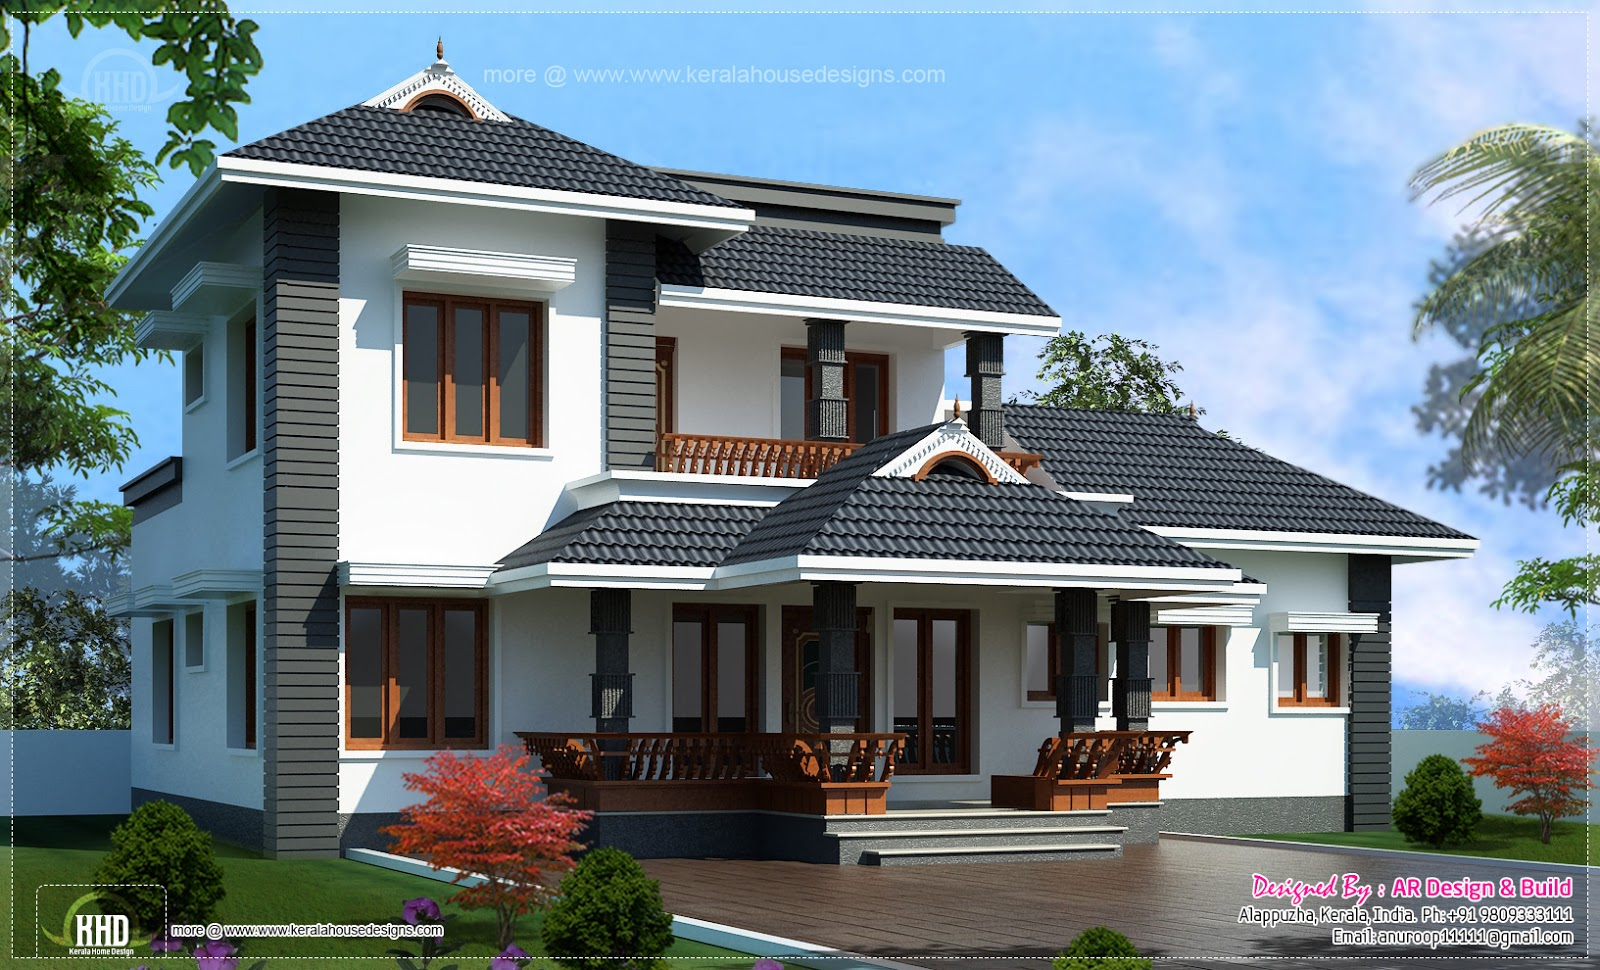 2000 4 bedroom sloping roof residence kerala for Kerala traditional home plans with photos